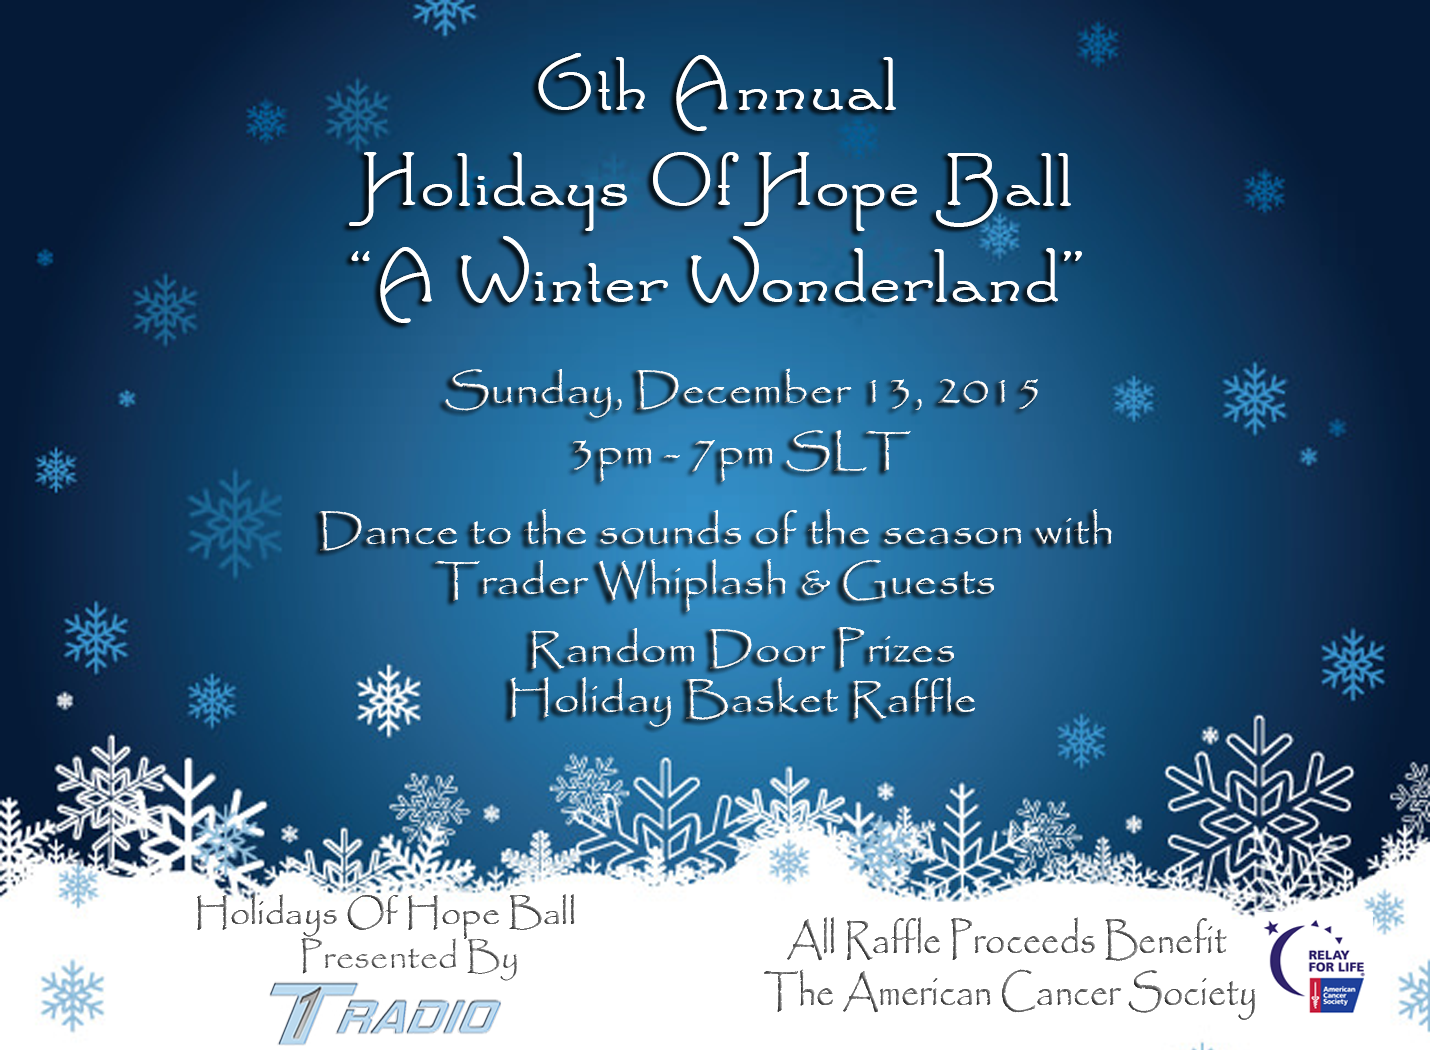 A winter wonderland the 2015 holidays of hope ball 6th annual gala the 6th annual holidays of hope ball will be held sunday dec 13th from 3 to 7 pm slt as part of the 2015 sl christmas expo this years theme will be a m4hsunfo